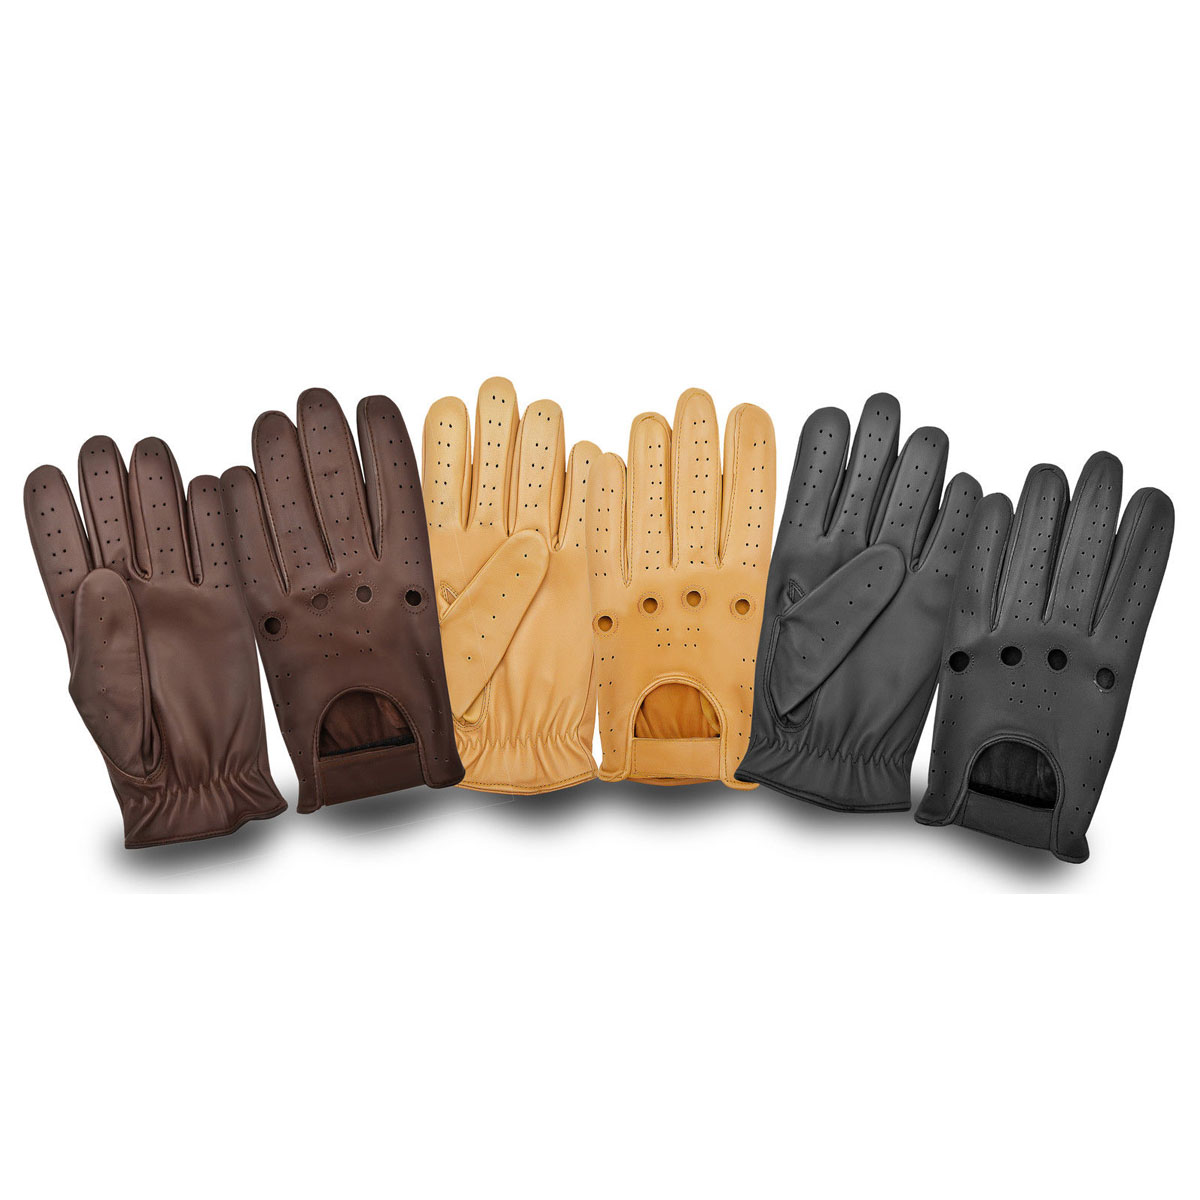 Driving gloves yahoo answers - Our Best Sellers Retro Style Lambskin Leather Driving Gloves